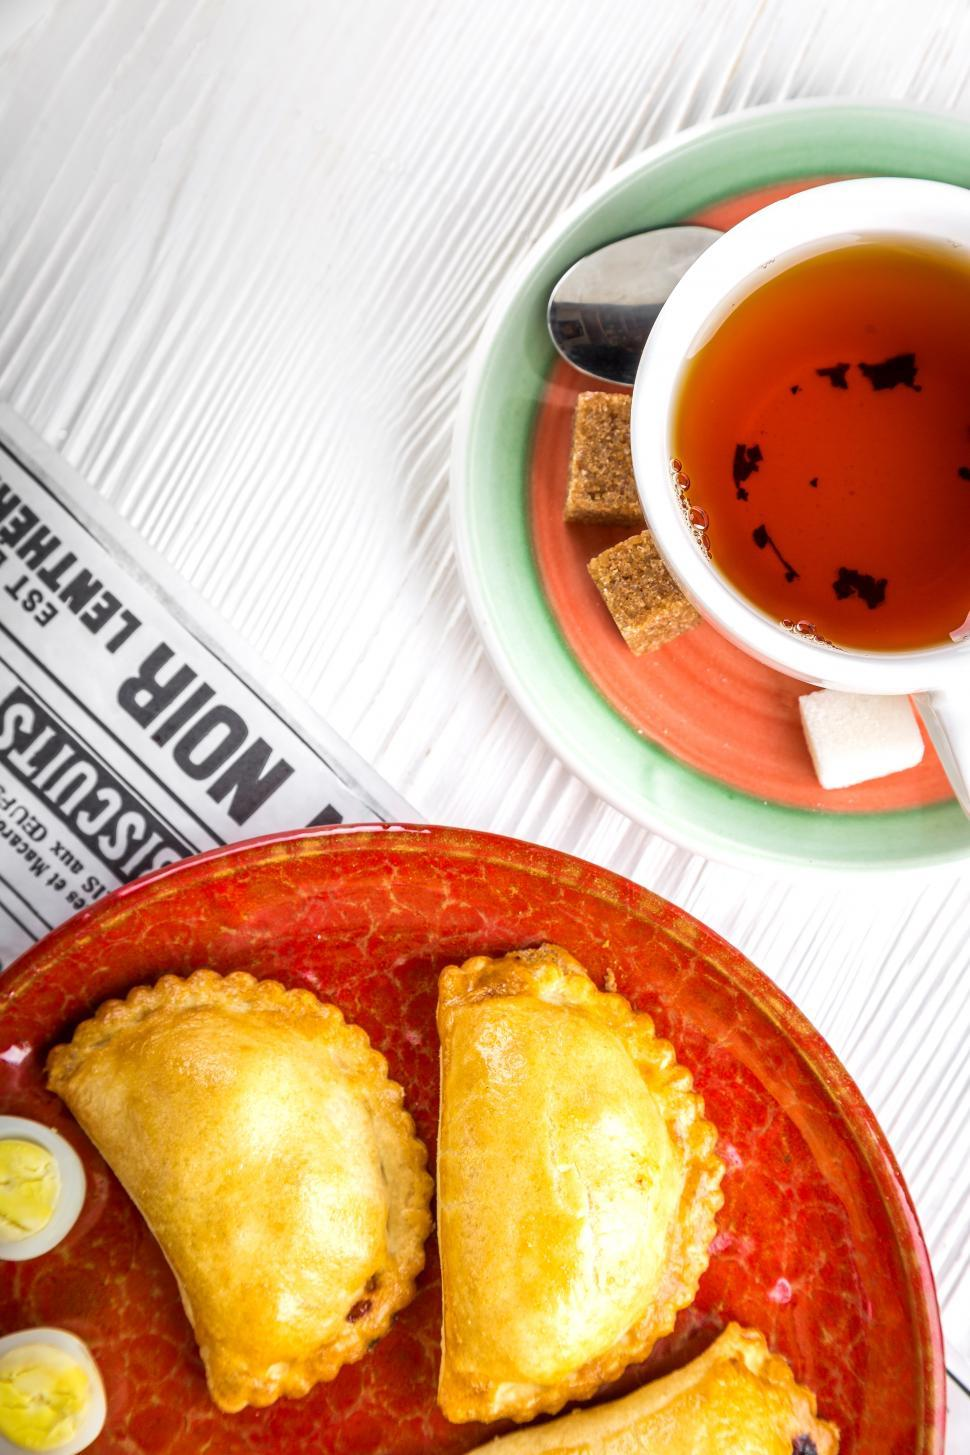 Download Free Stock HD Photo of Over head view of a cup of tea and Russian pirozhki baked patties Online